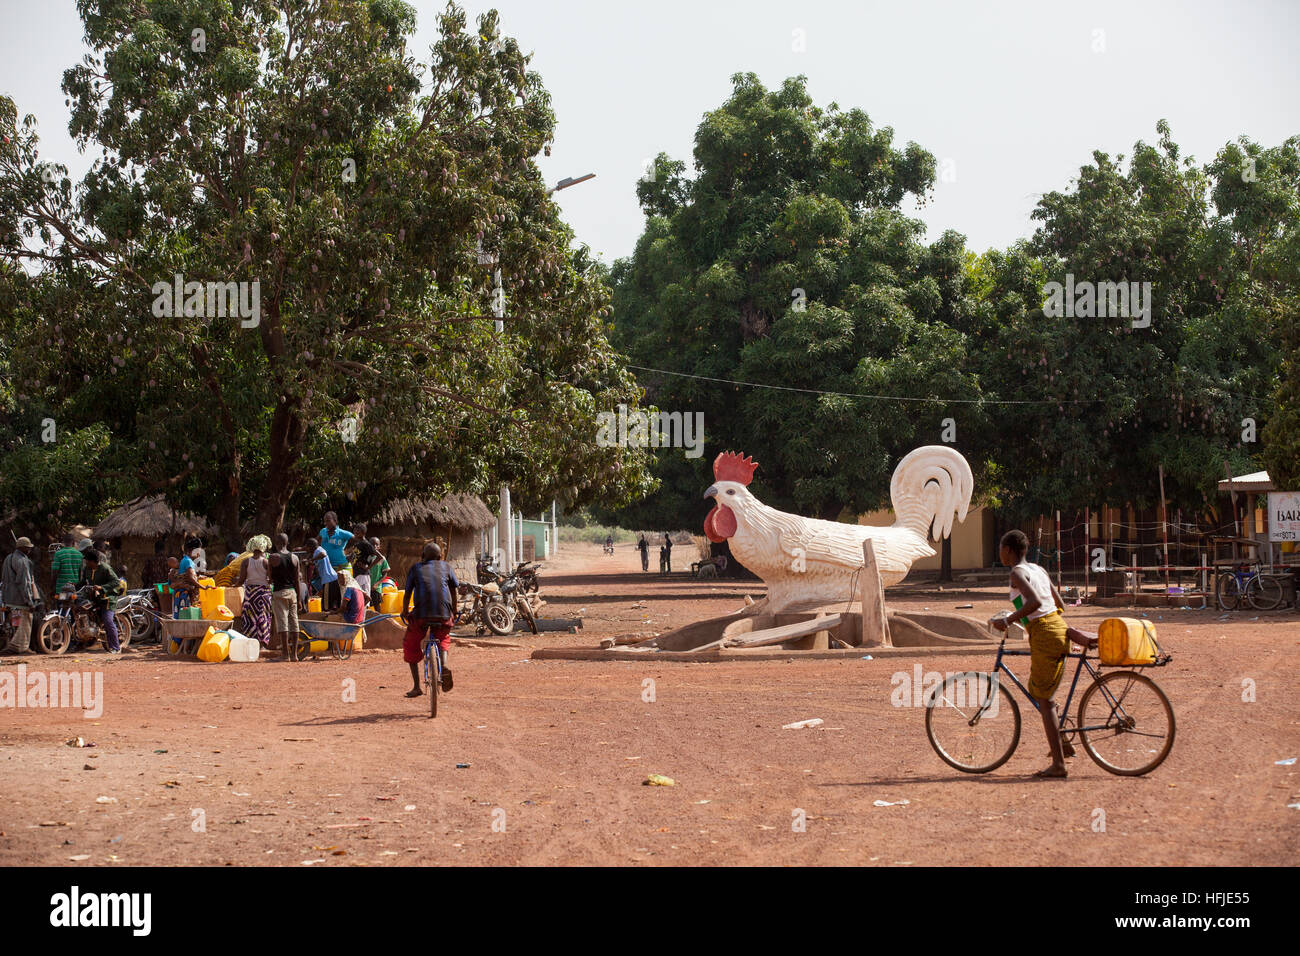 Baro village, Guinea, 1st May 2015:  People fetching water from a water point. Stock Photo